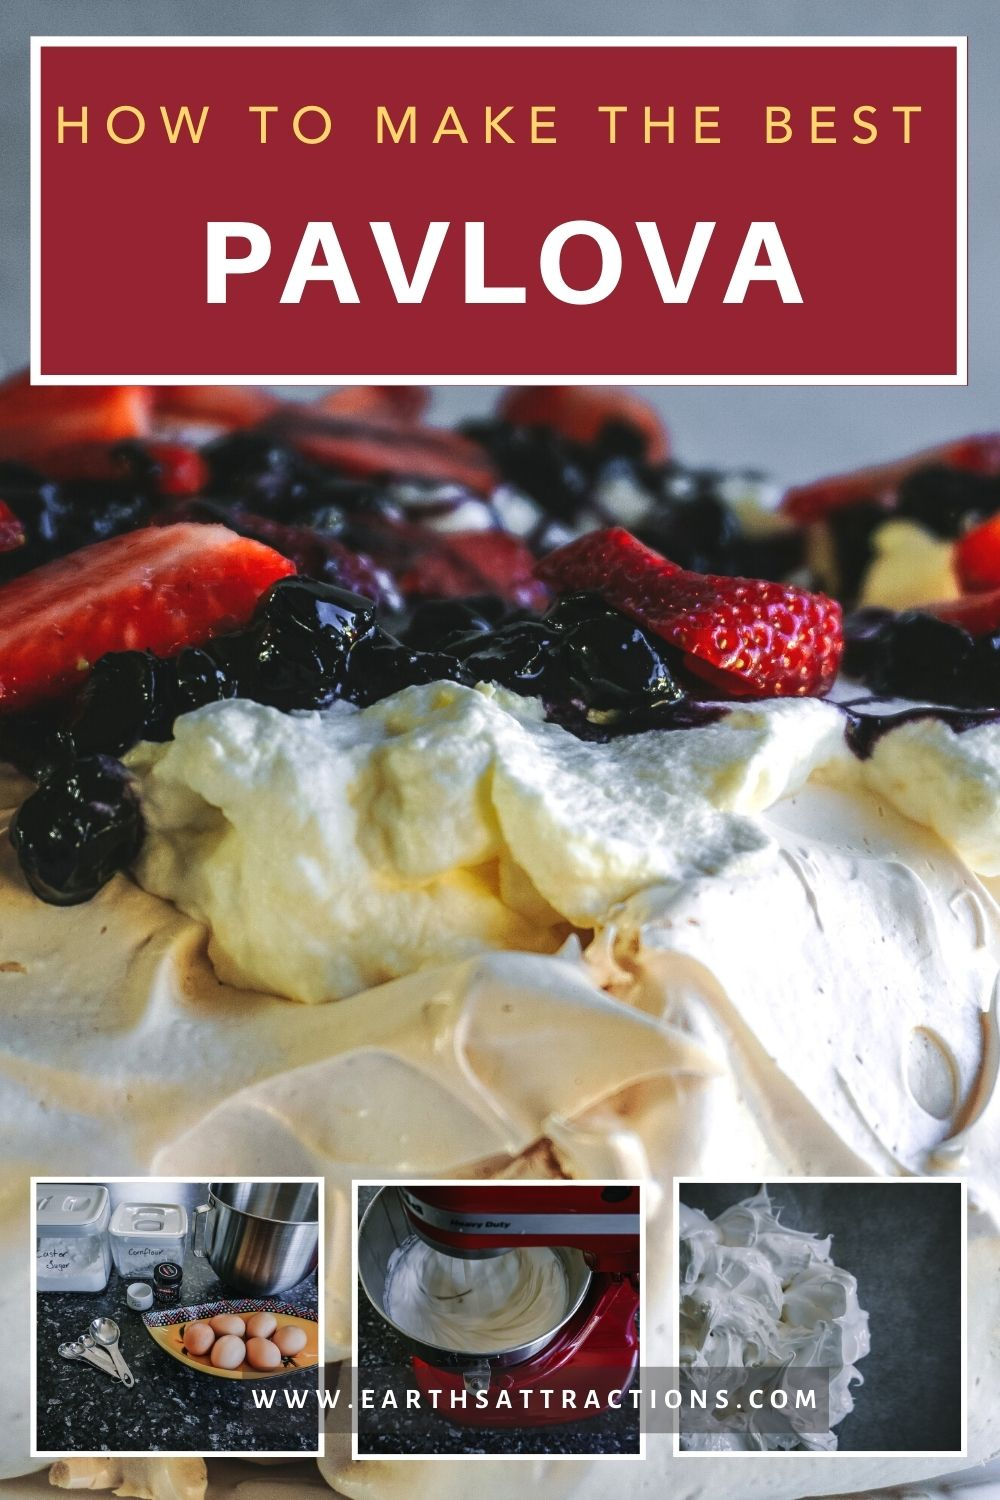 Authentic Pavlova recipe: how to make Pavlova cake. Discover the best New Zealand Pavlova recipe; easy to make and just a few ingredients needed! Discover one of the best Australian desserts - and a great Christmas food to try! #pavlova #newzealand #food #pavlovadish #pavlovacake #dessert #nz #earthsattractions #christmas